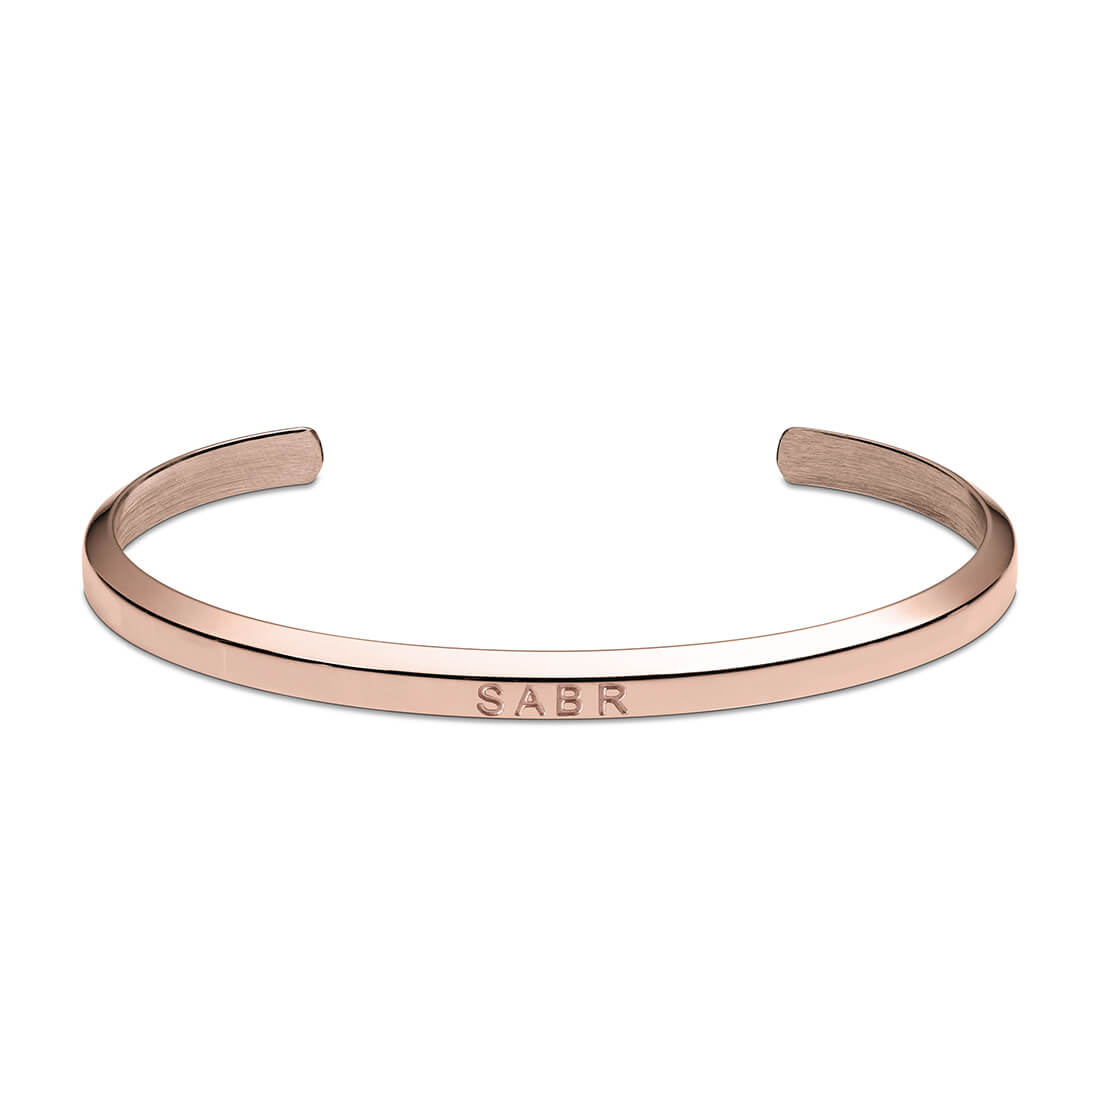 Sabr Cuff Bracelet in Rose Gold by Crscnt Moon